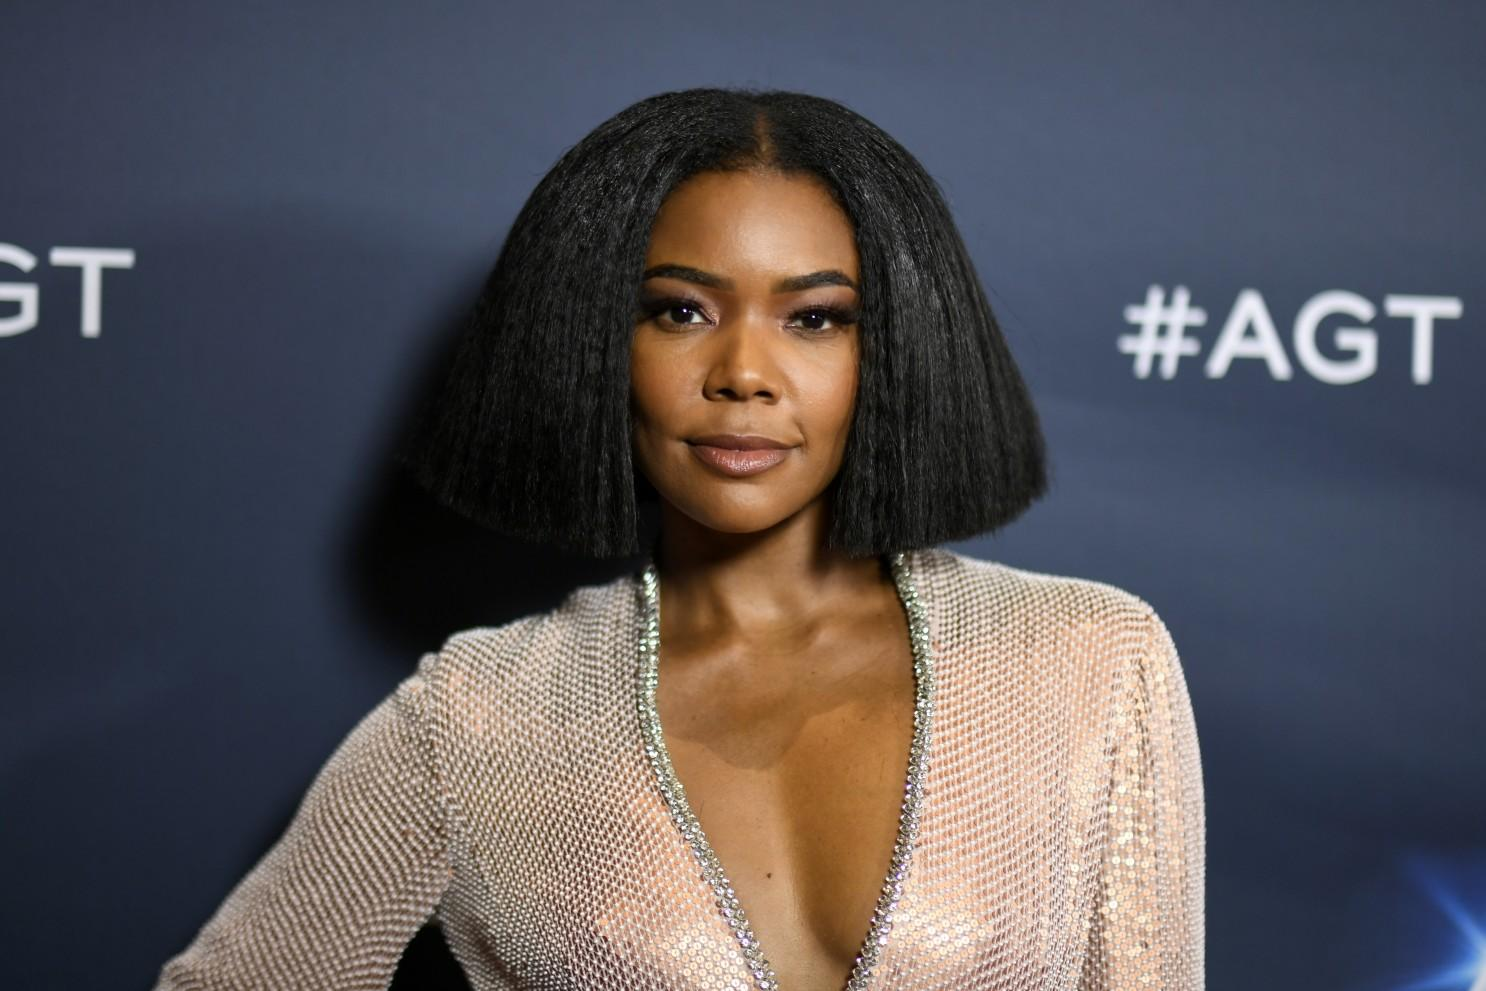 Gabrielle Union Launches New Hair Care Products Called 'Flawless'